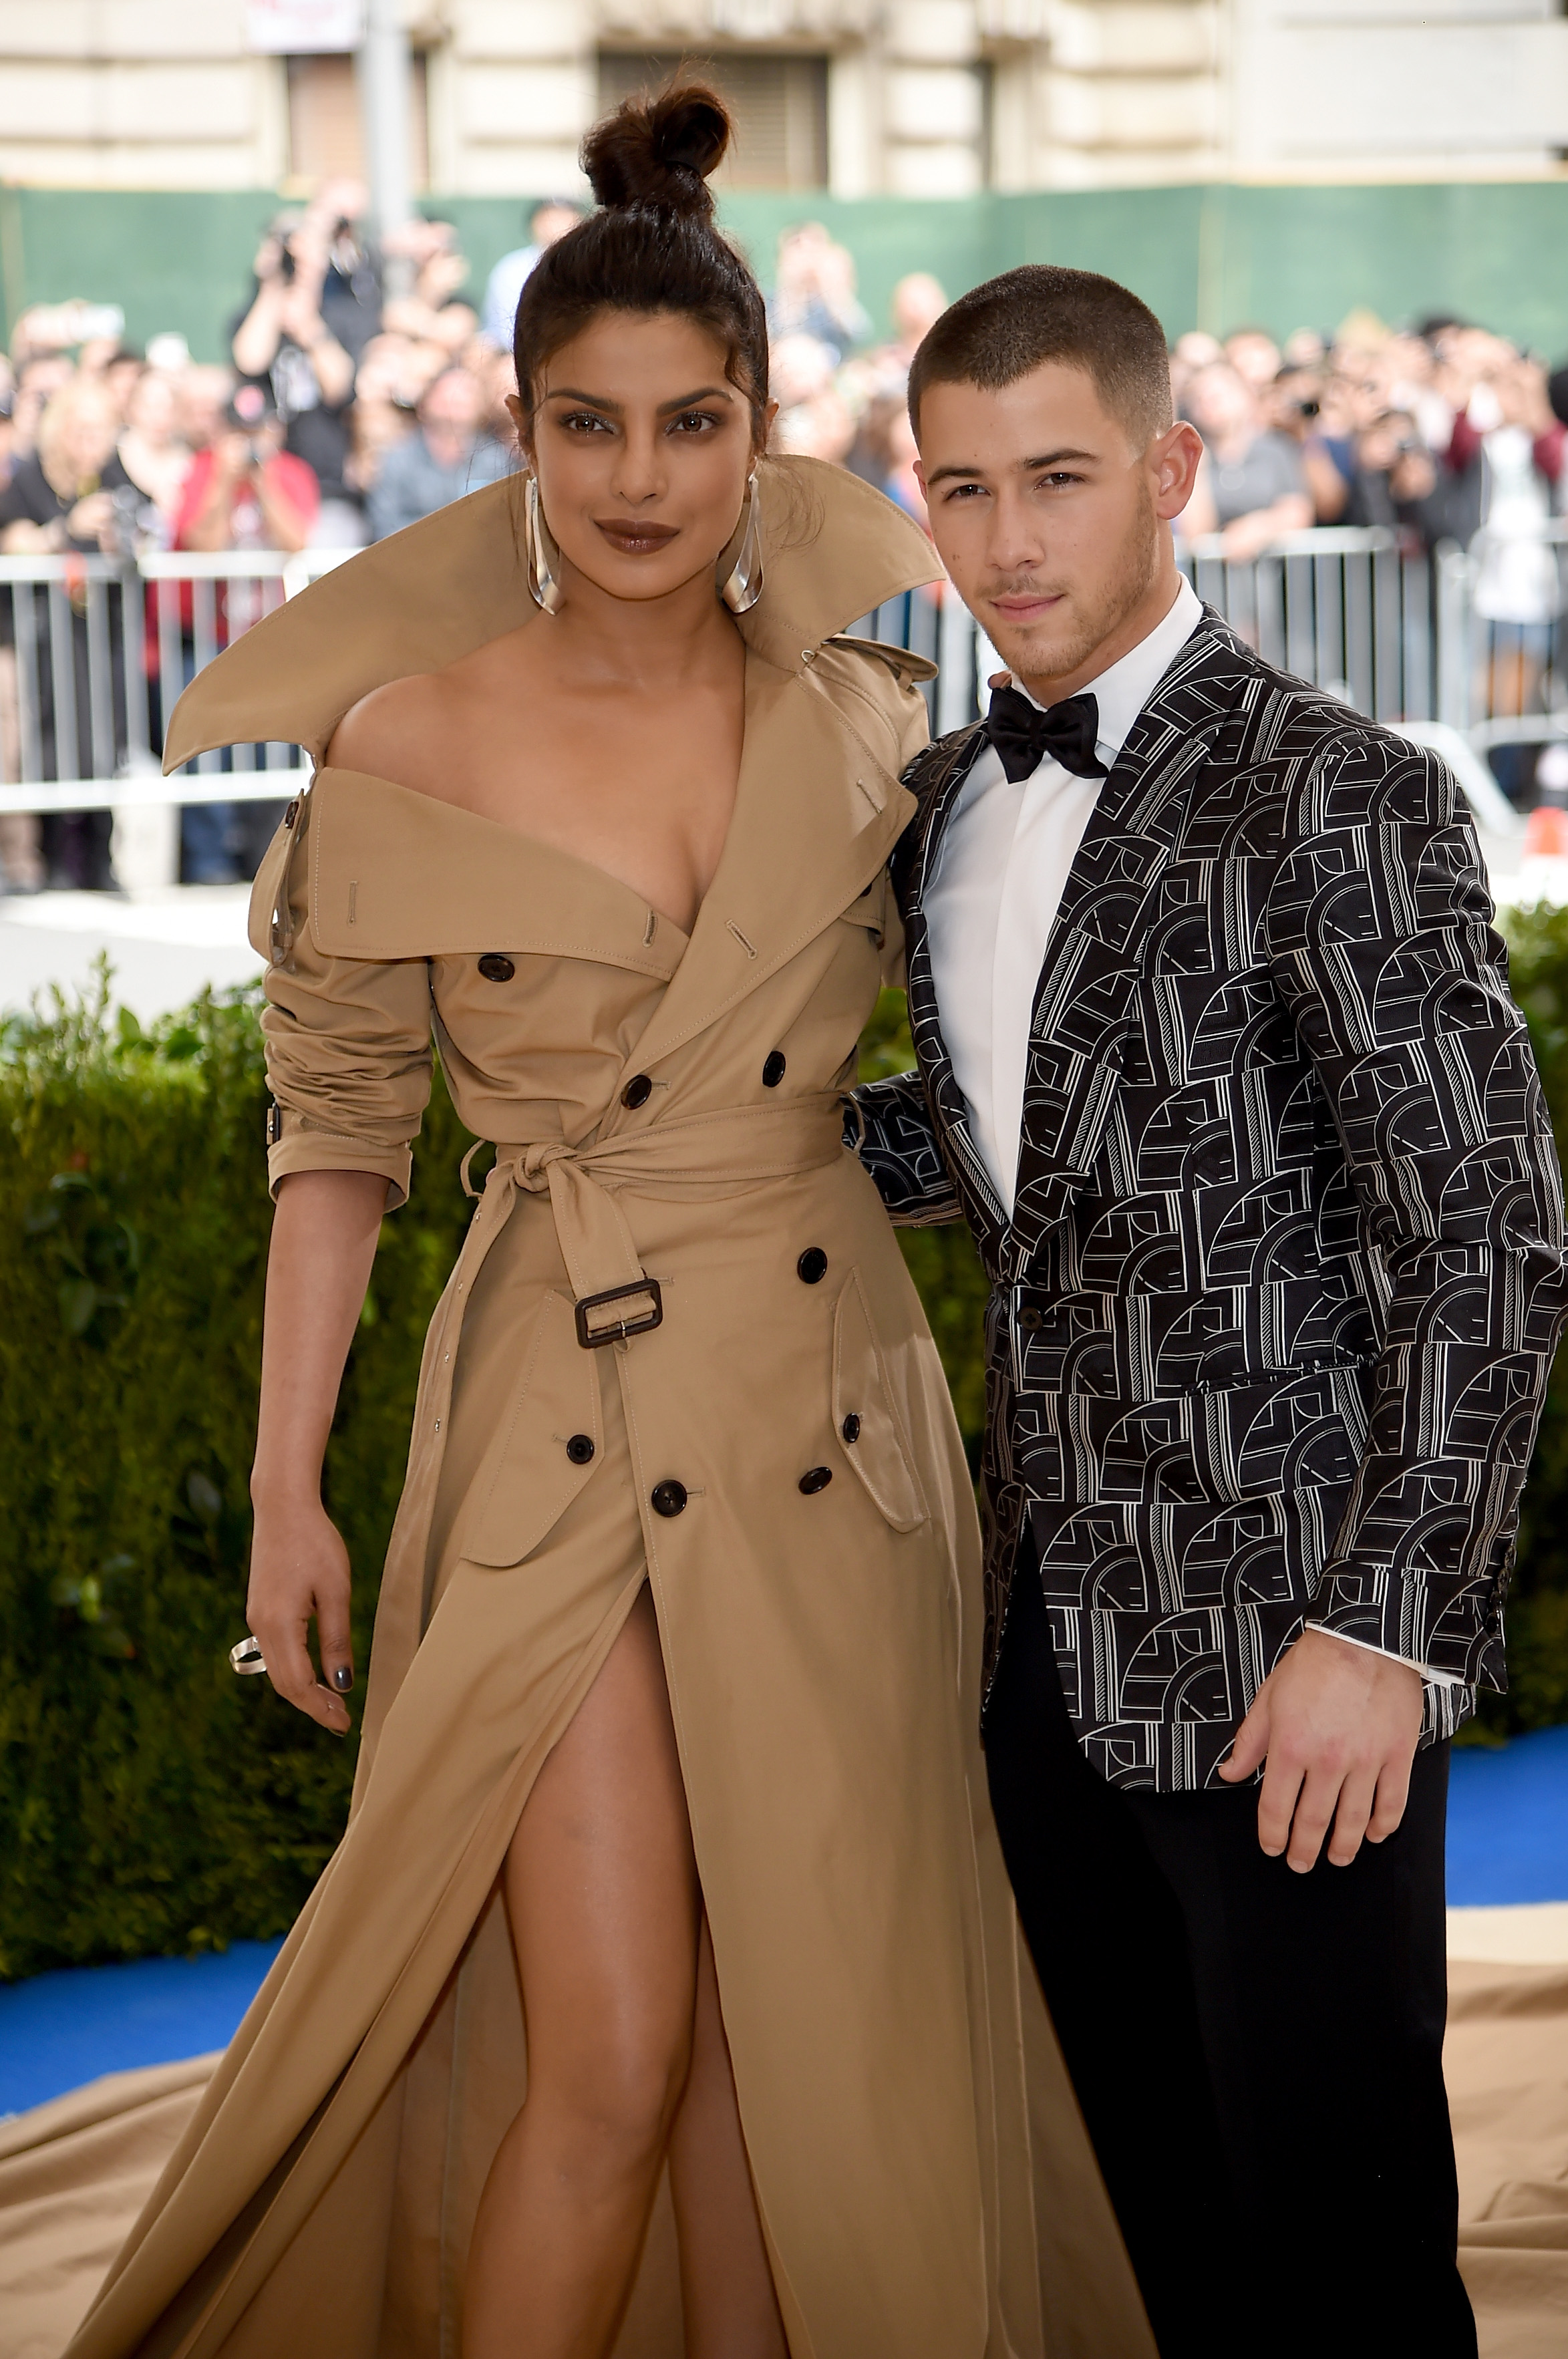 Priyanka Chopra and Nick Jonas made their first public appearance at the MET Gala in 2017 (Photo by Dimitrios Kambouris/Getty Images)